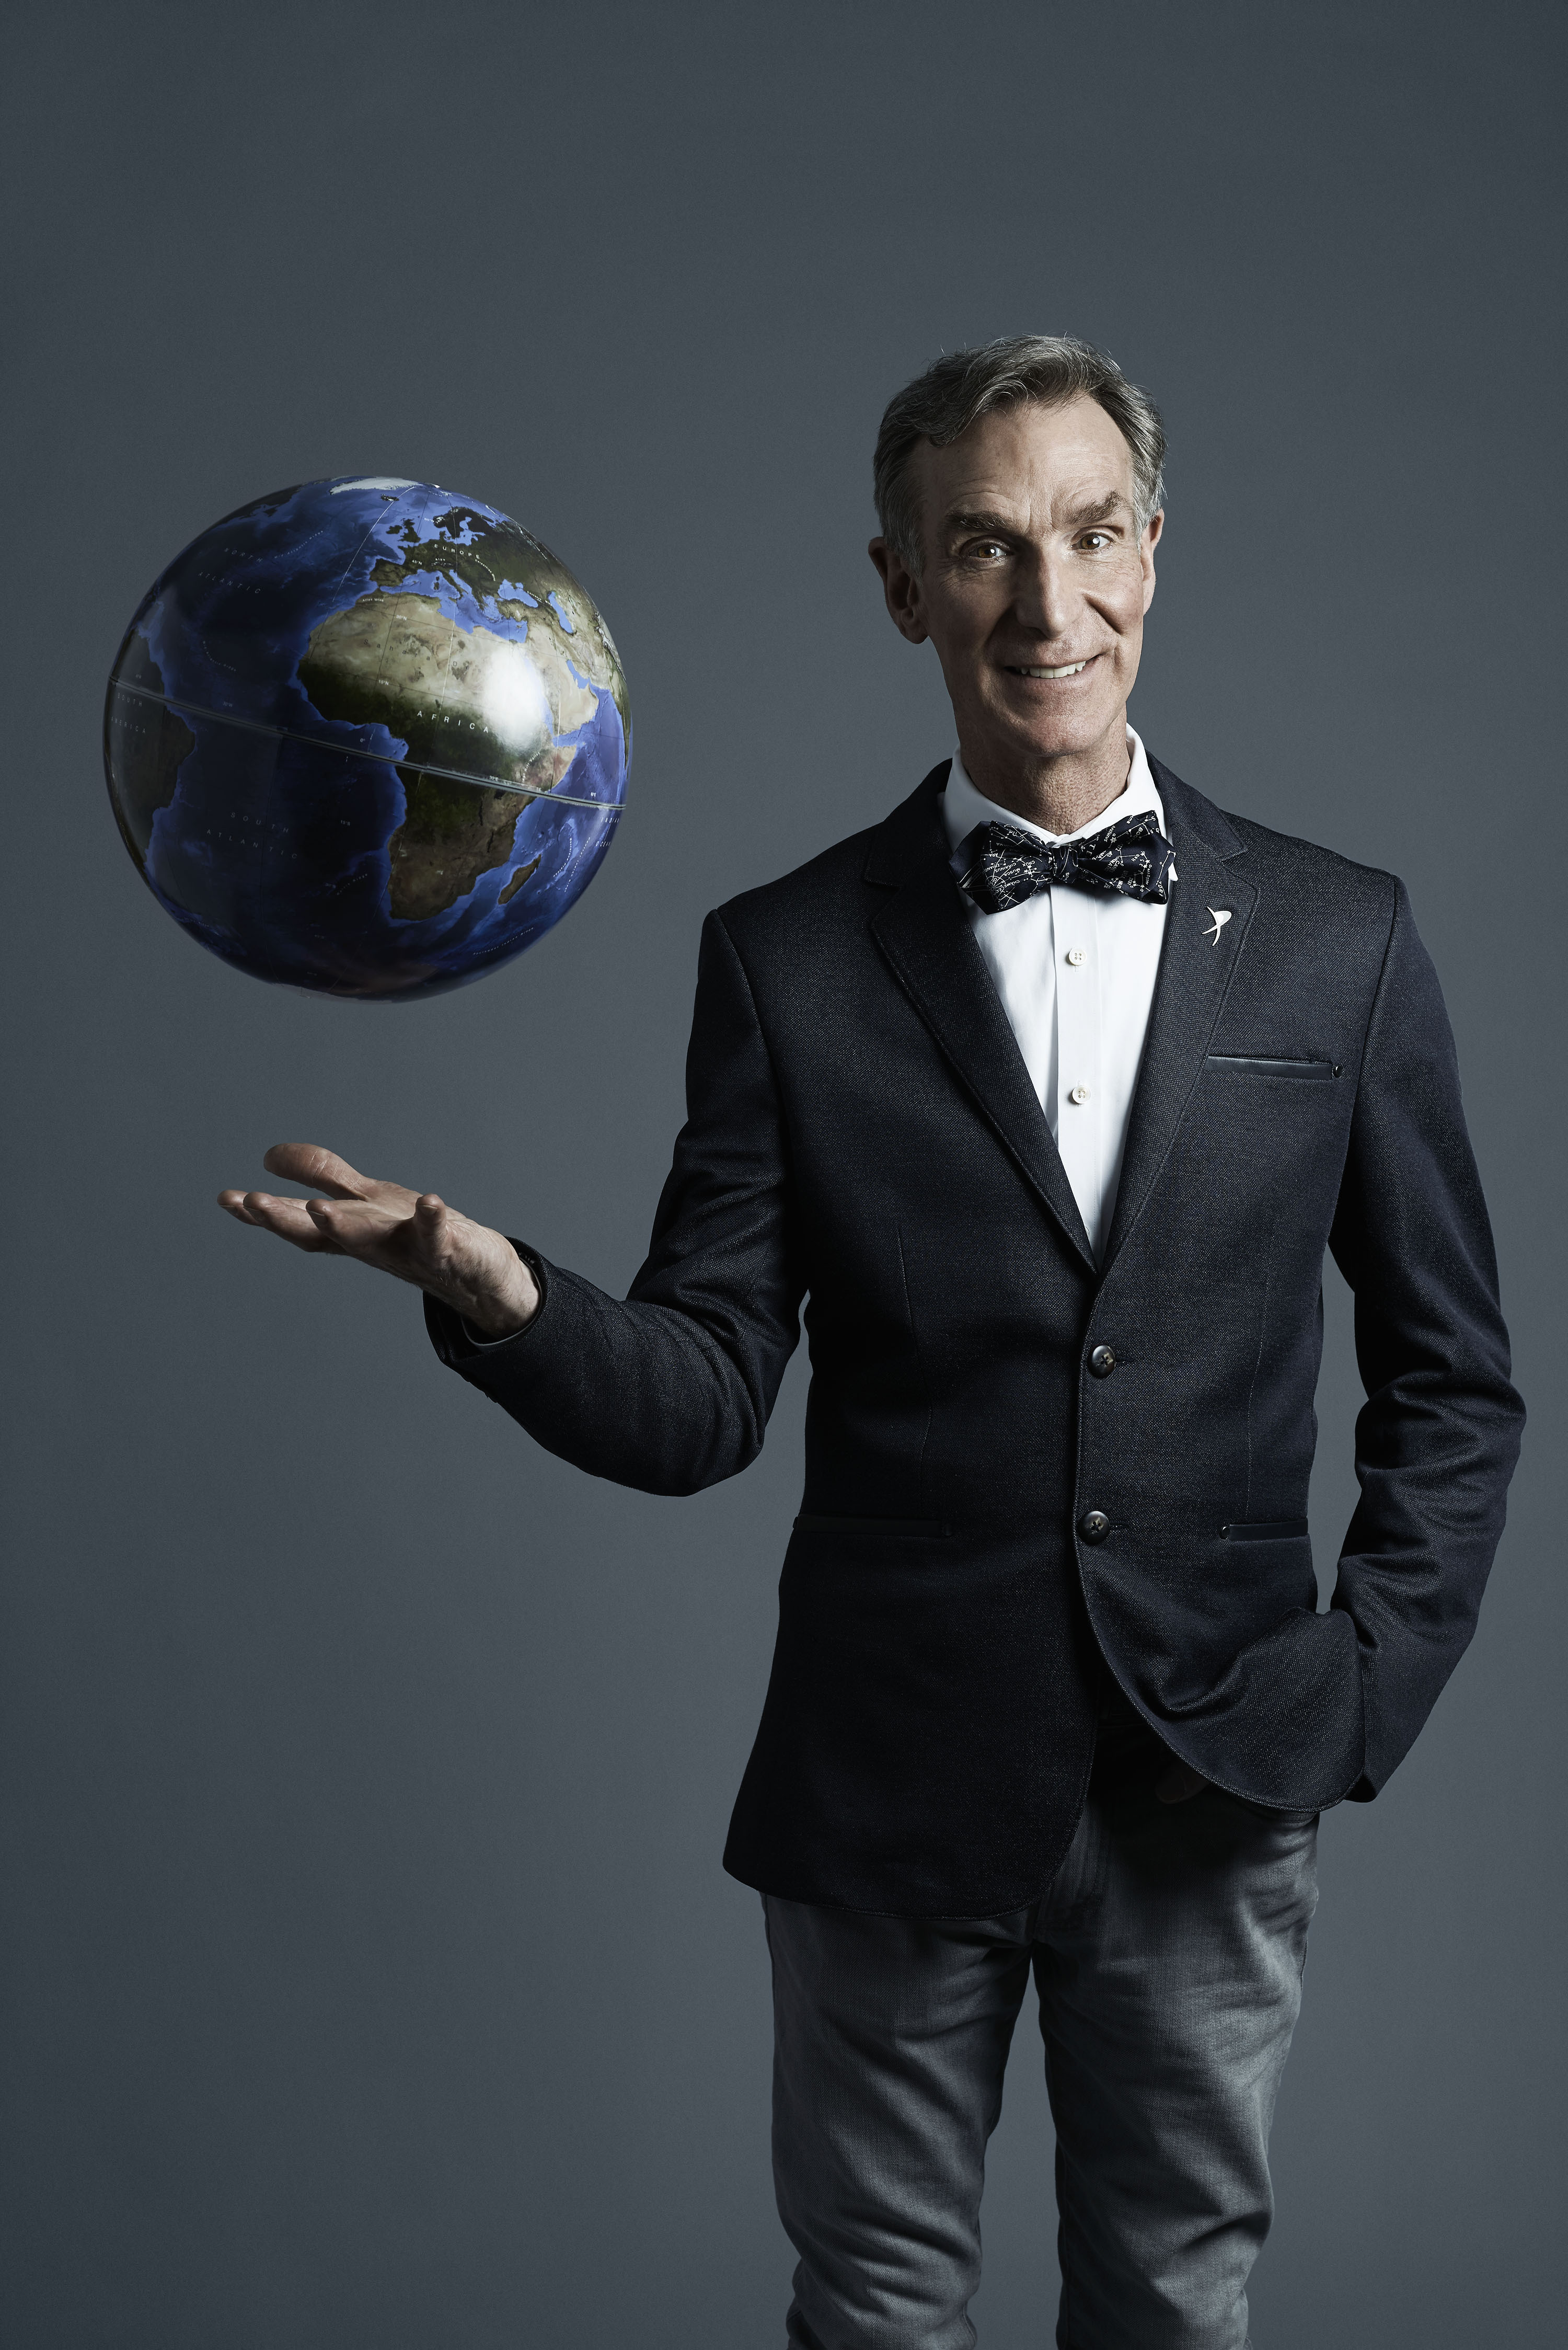 bill nye planets and moons schooltube - photo #43